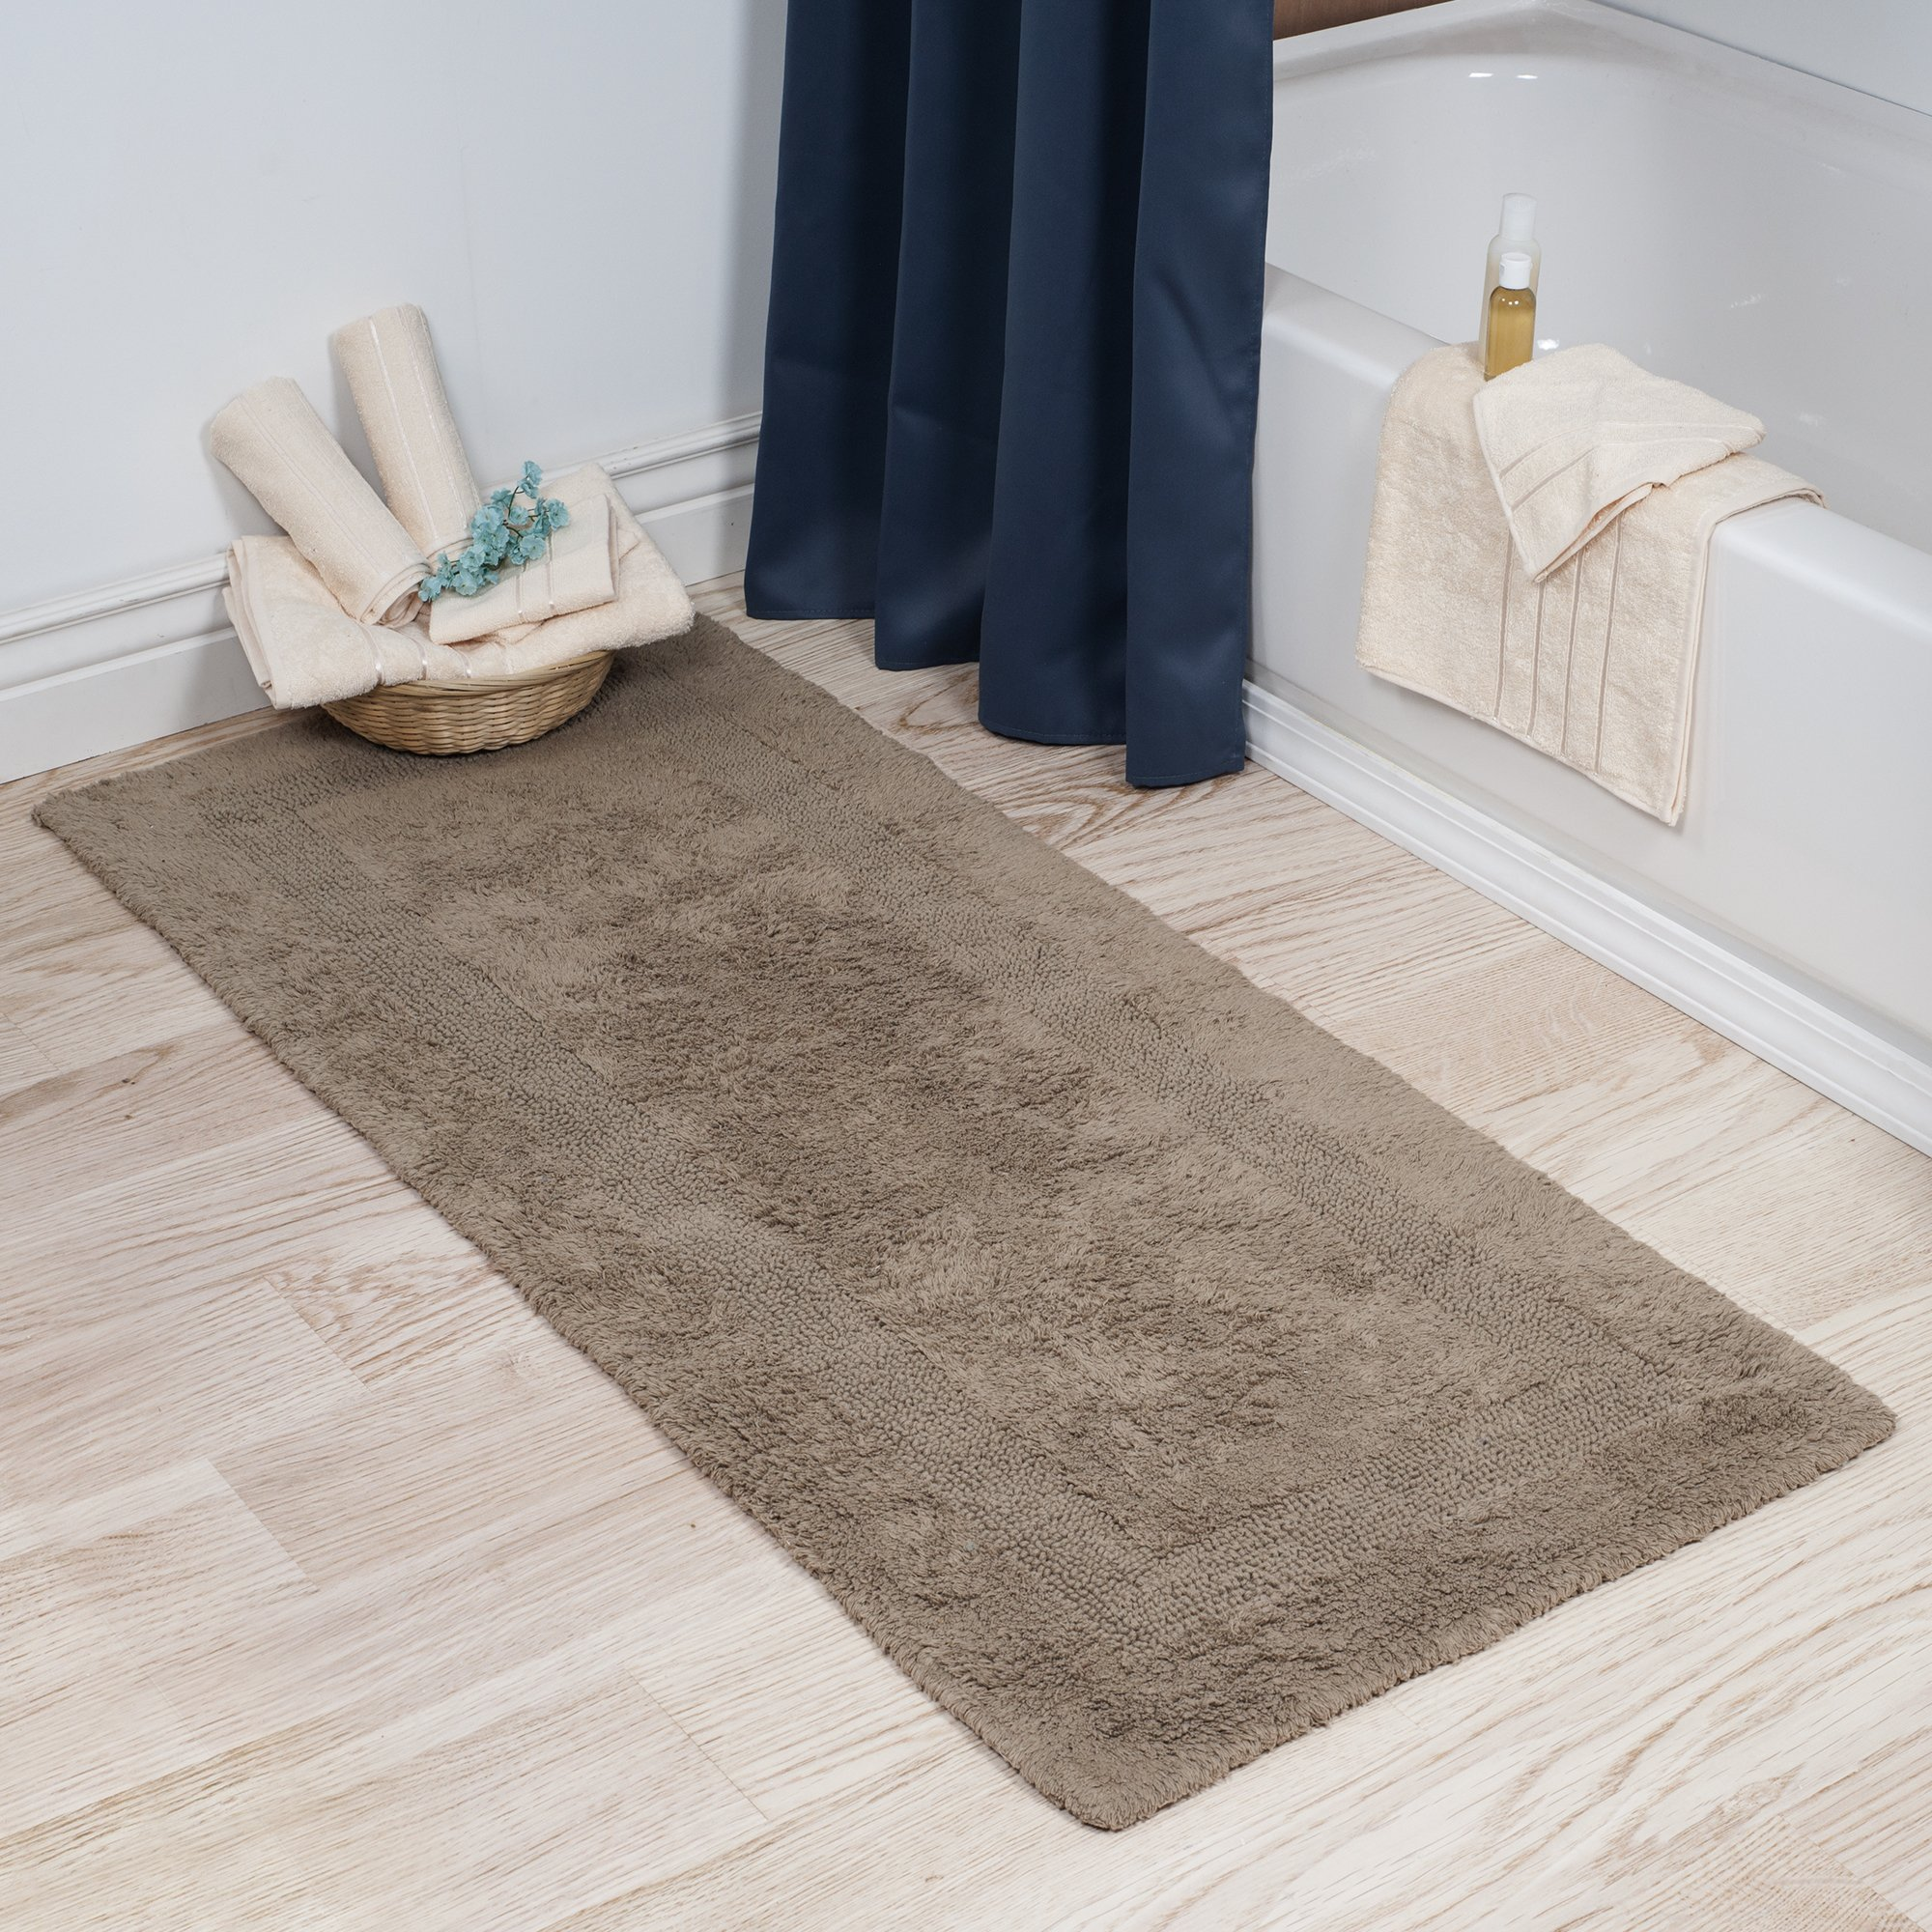 Reversible Cotton Bath Rugs Amazon Com